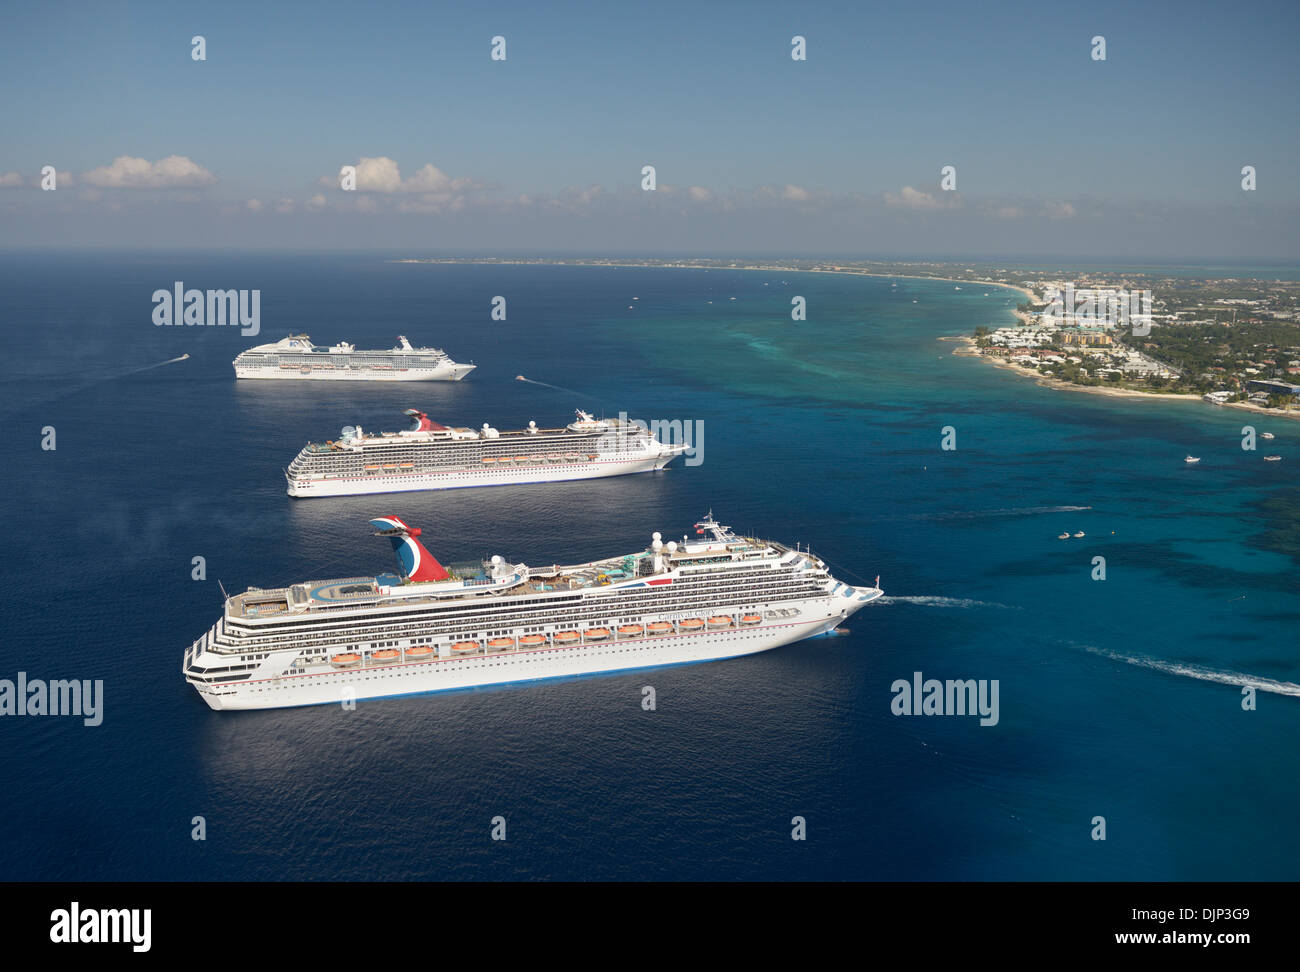 Cruise Ship Cayman Islands